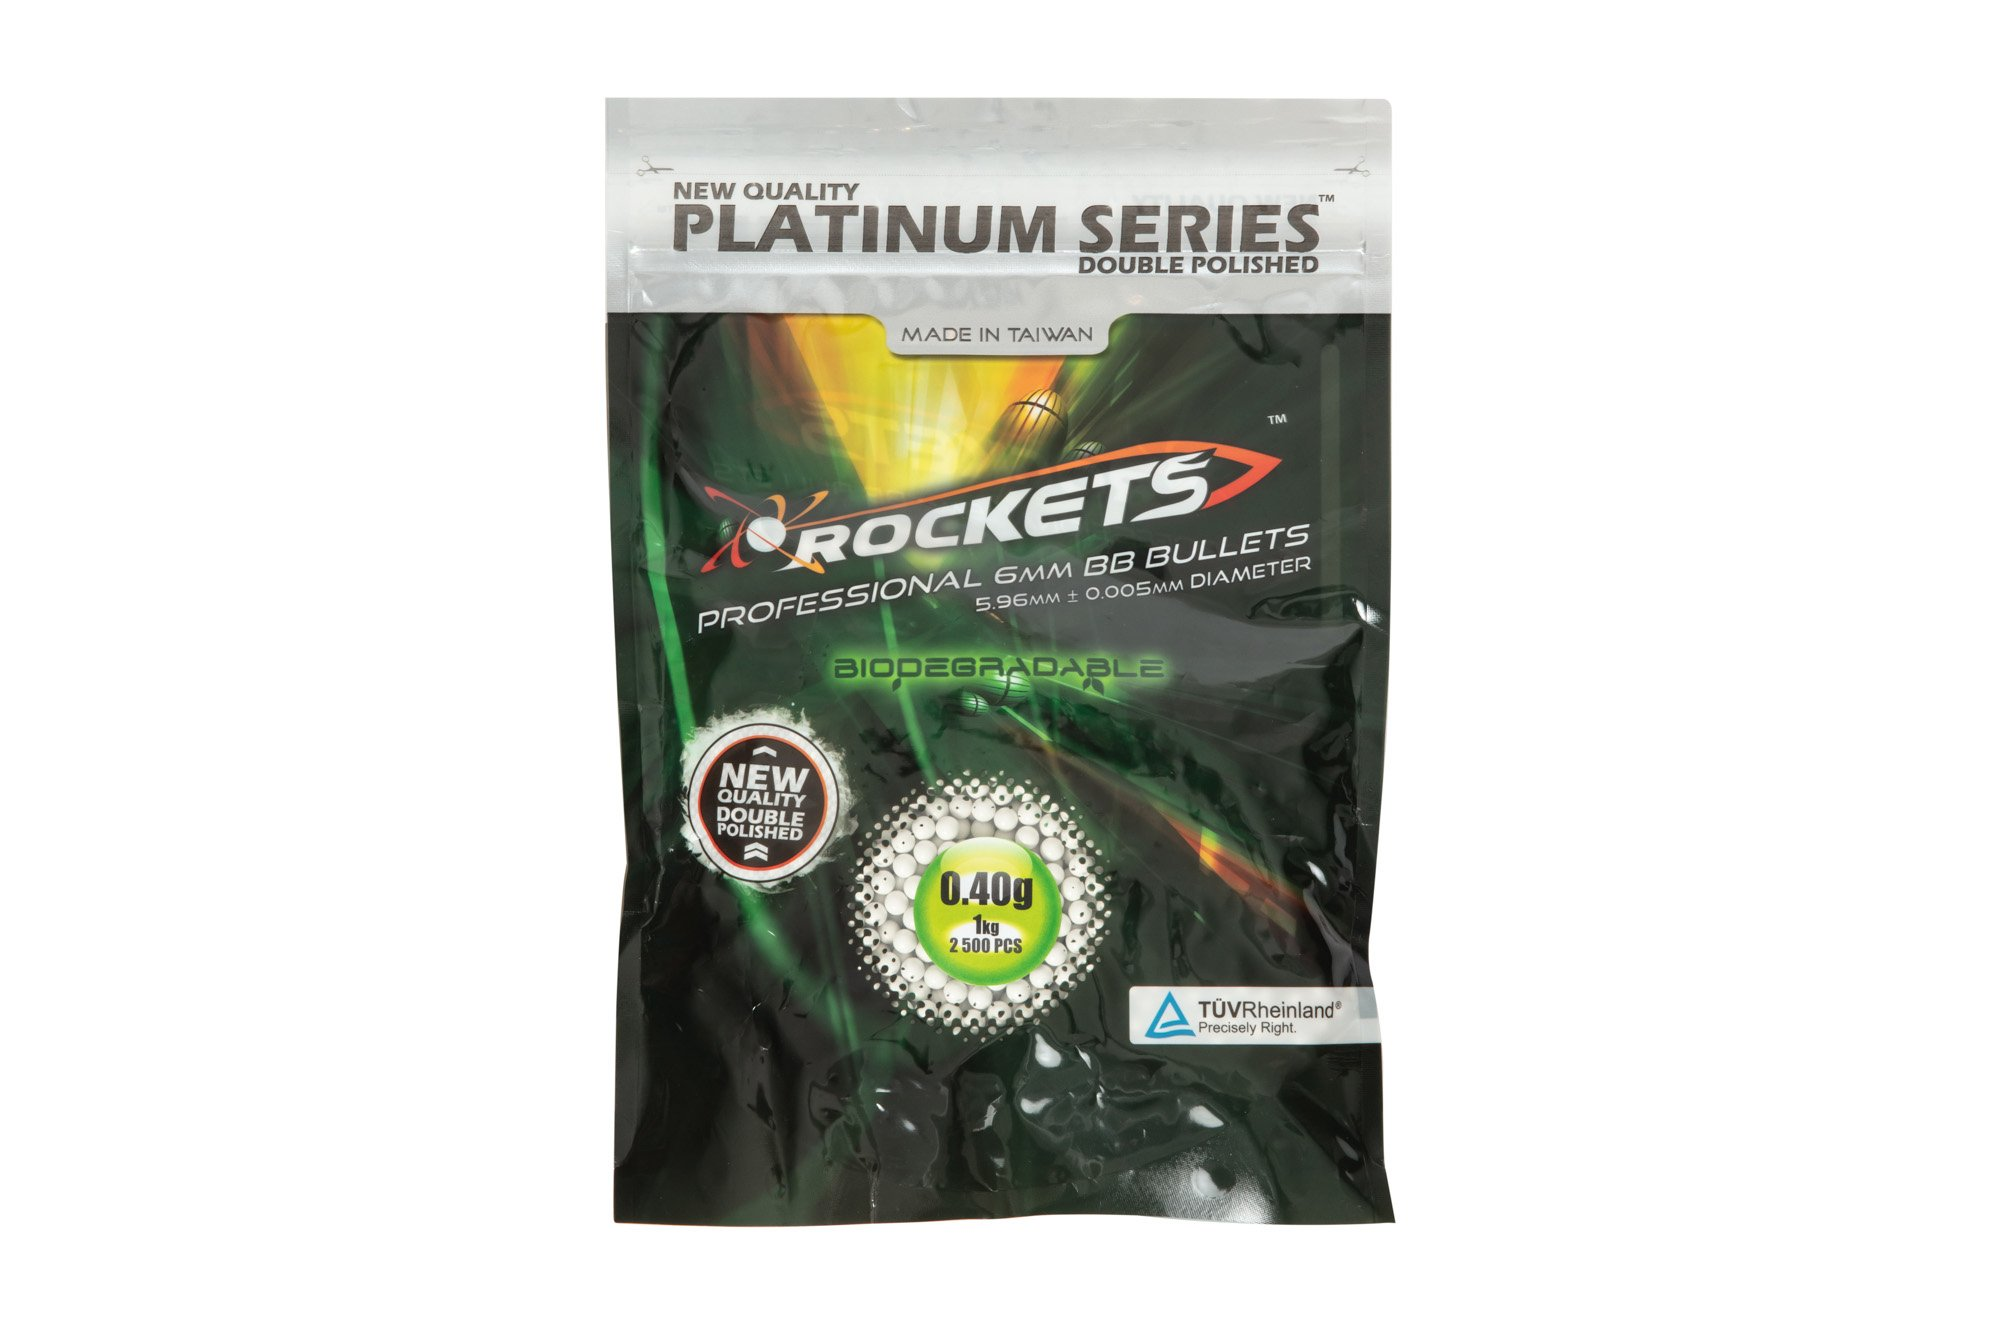 Gunfire 0,40g Rockets Platinum 1 kg